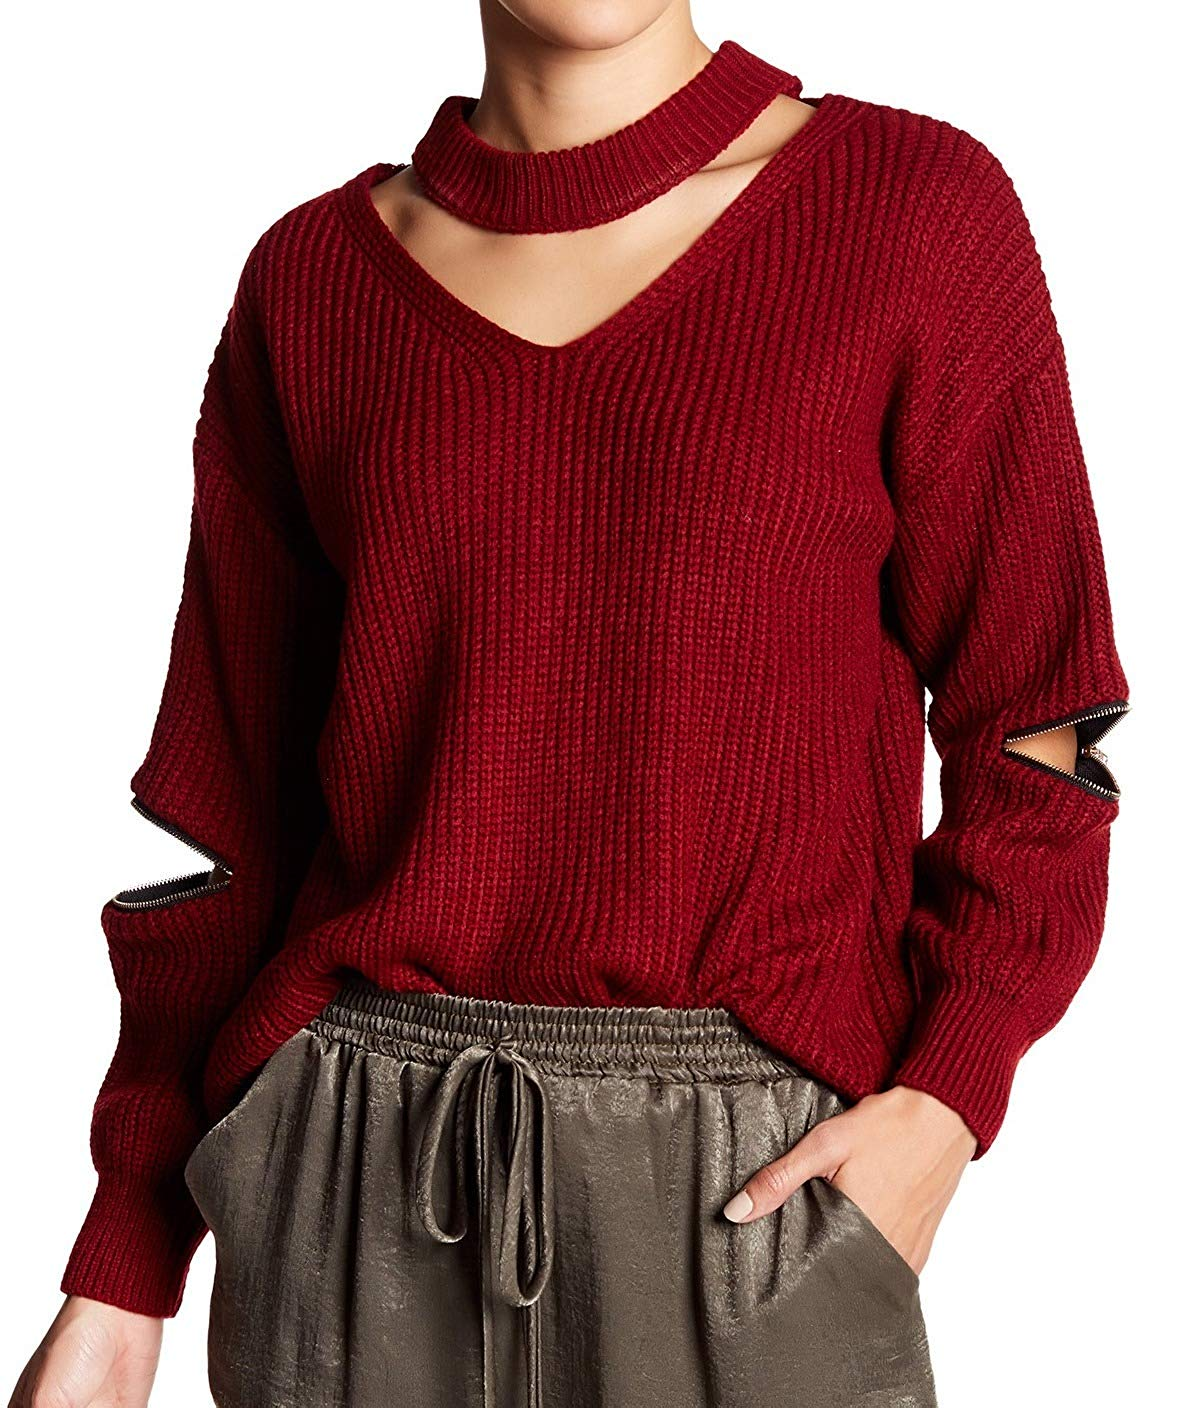 5e56026eab9 Get Quotations · Leibl  38 Womens Medium V-Neck Cutout Zip-Elbow Sweater  Red M